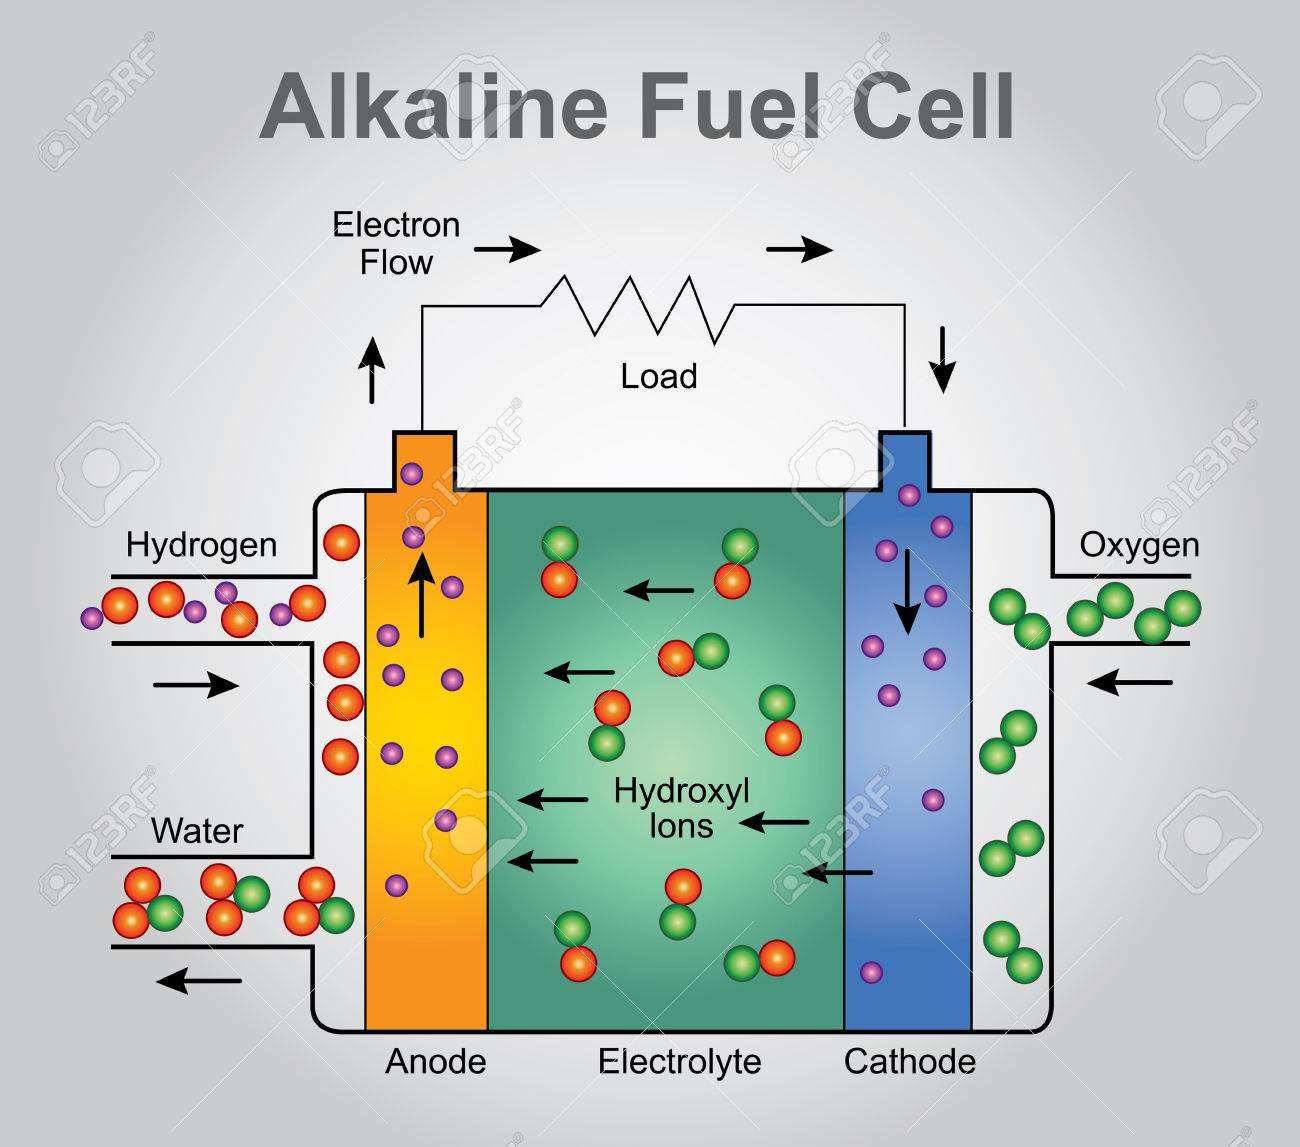 The alkaline fuel cell, also known as the Bacon fuel cell after